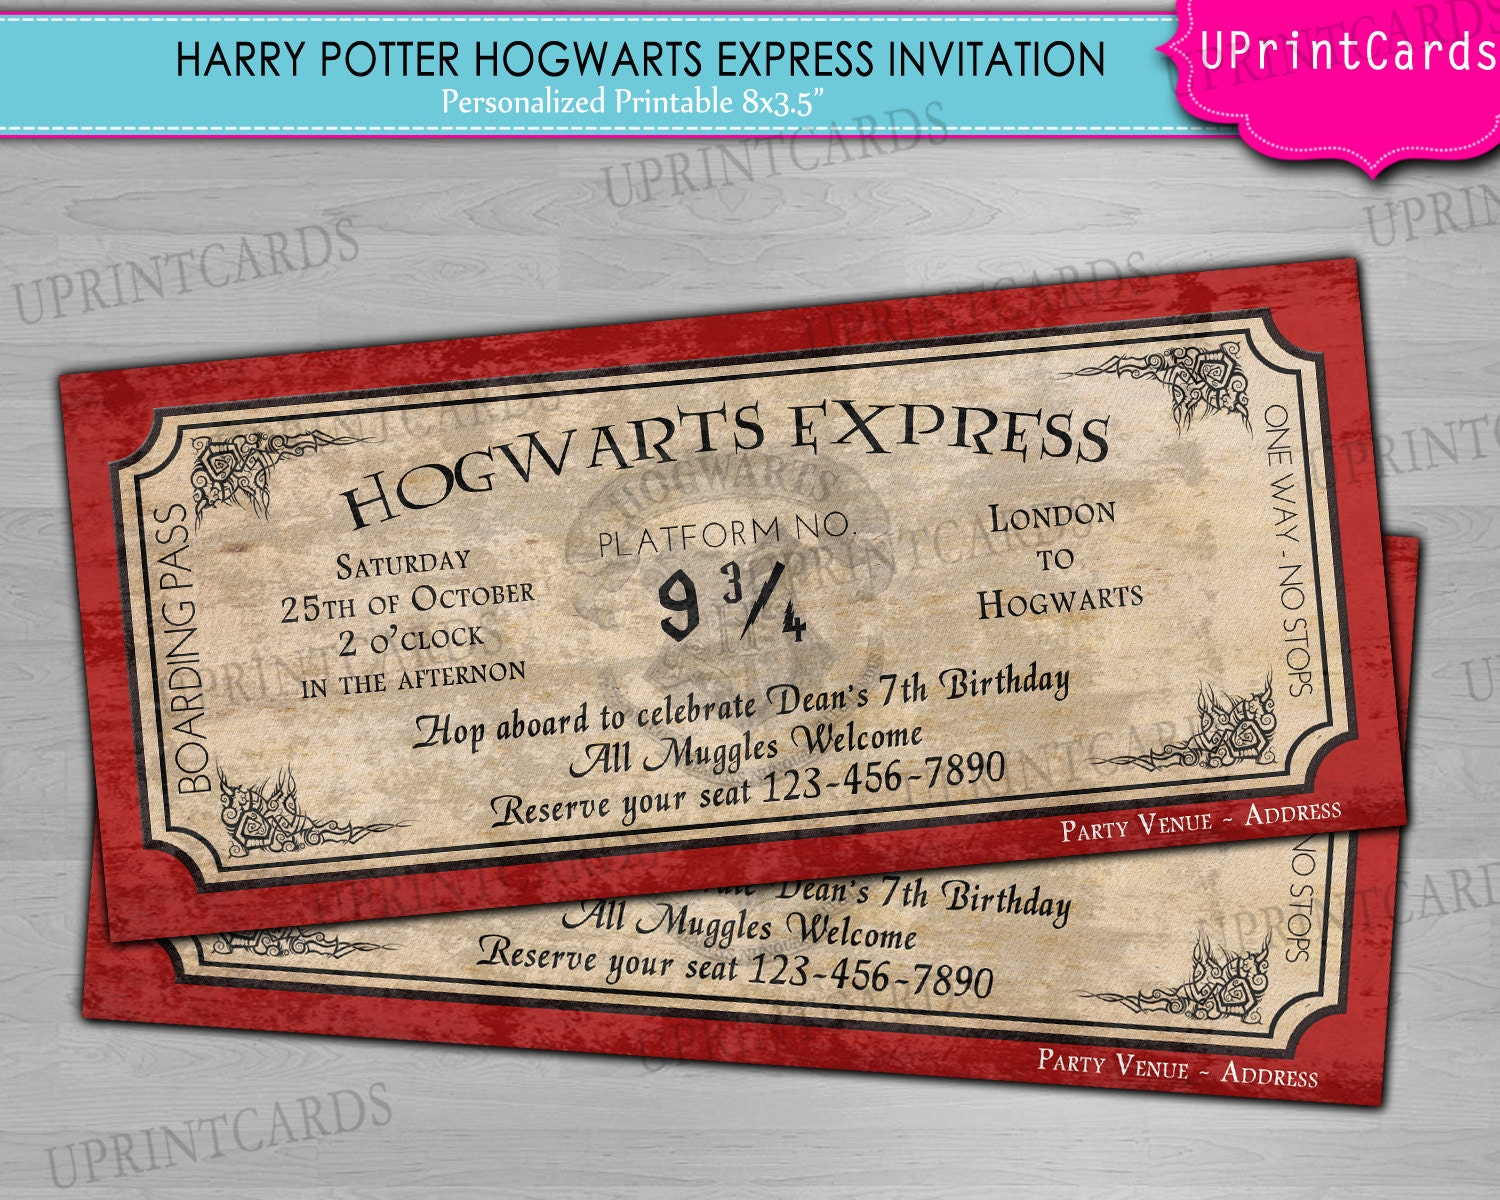 Resource image pertaining to hogwarts express printable